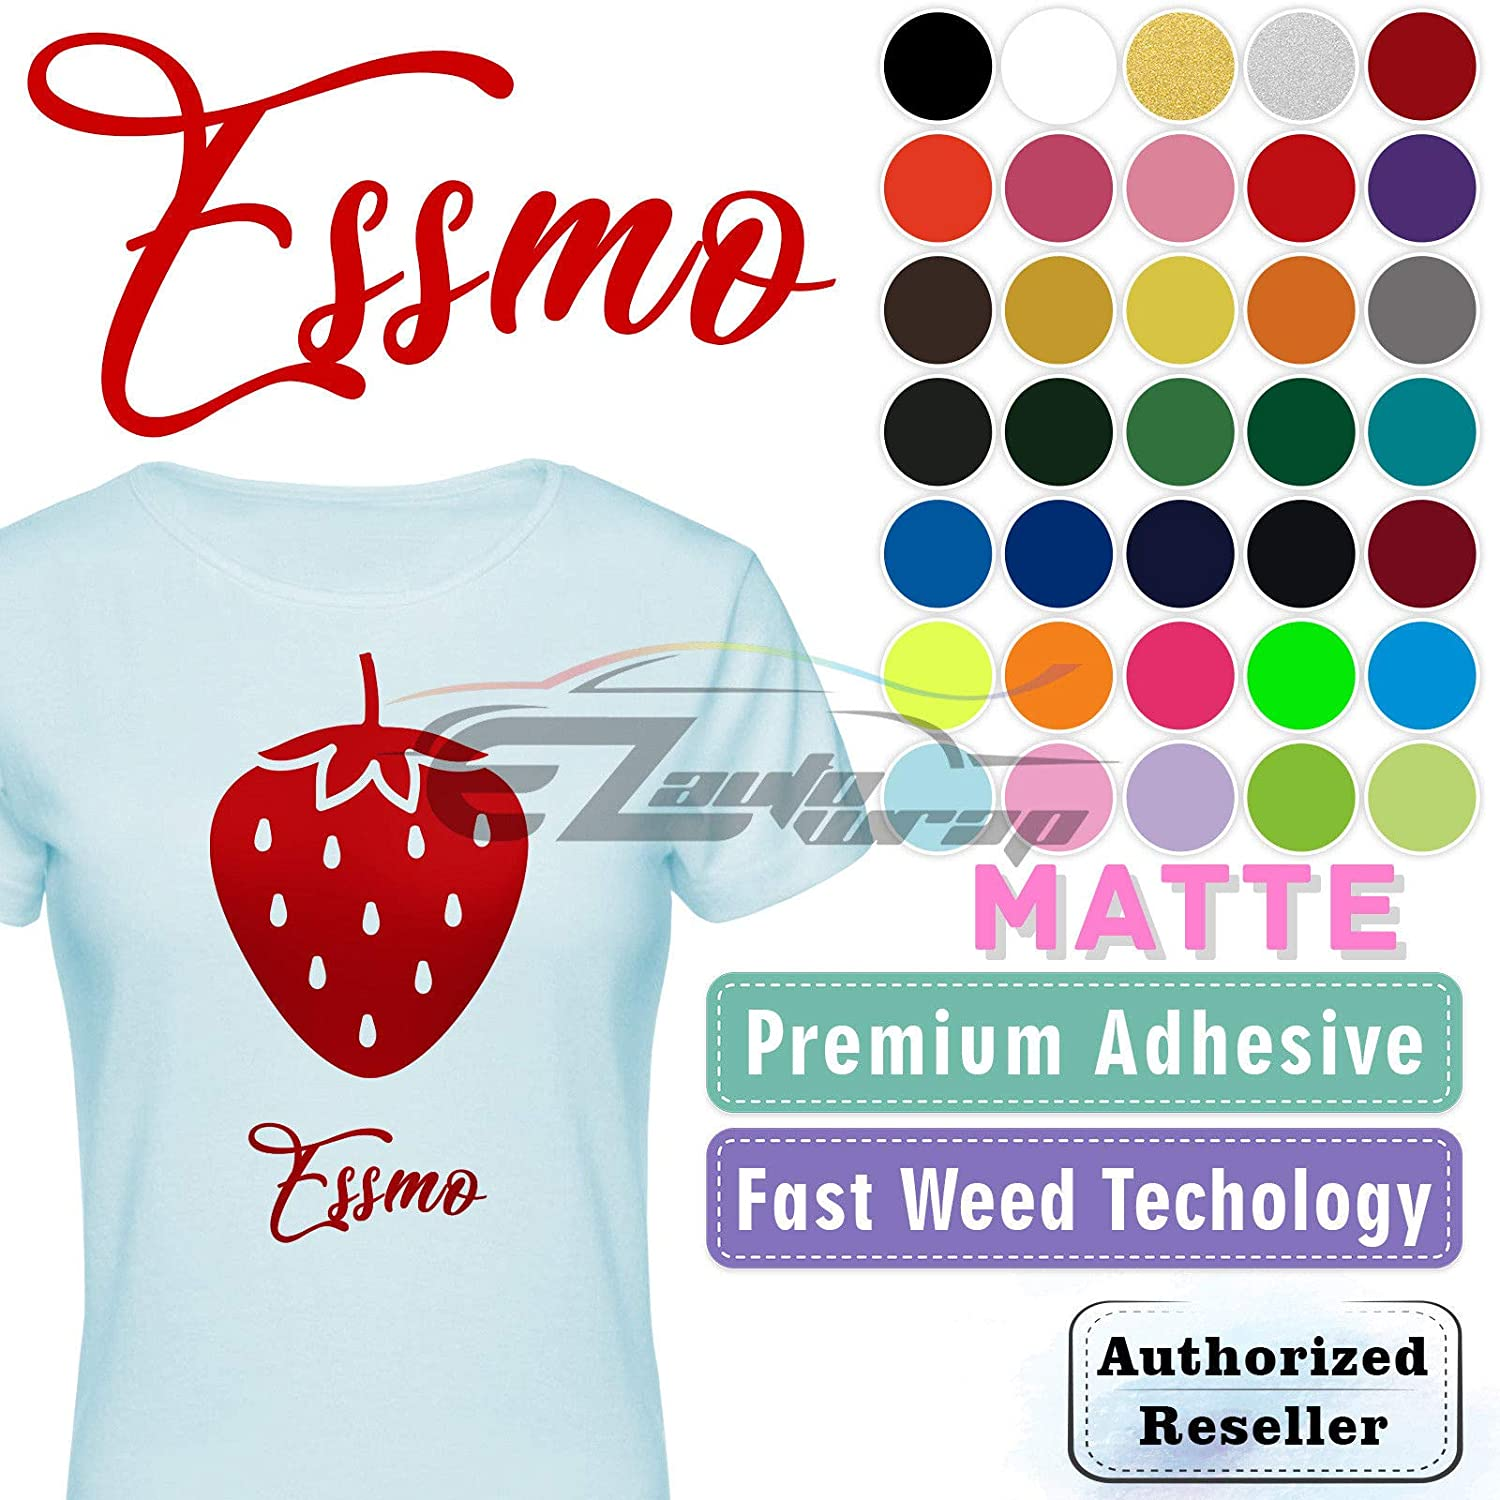 ESSMO Lemon Yellow Matte Solid Heat Transfer Vinyl HTV Sheet T-Shirt 20 Wide Iron On Heat Press Best HTV for Silhouette Cameo and Cricut 20x12